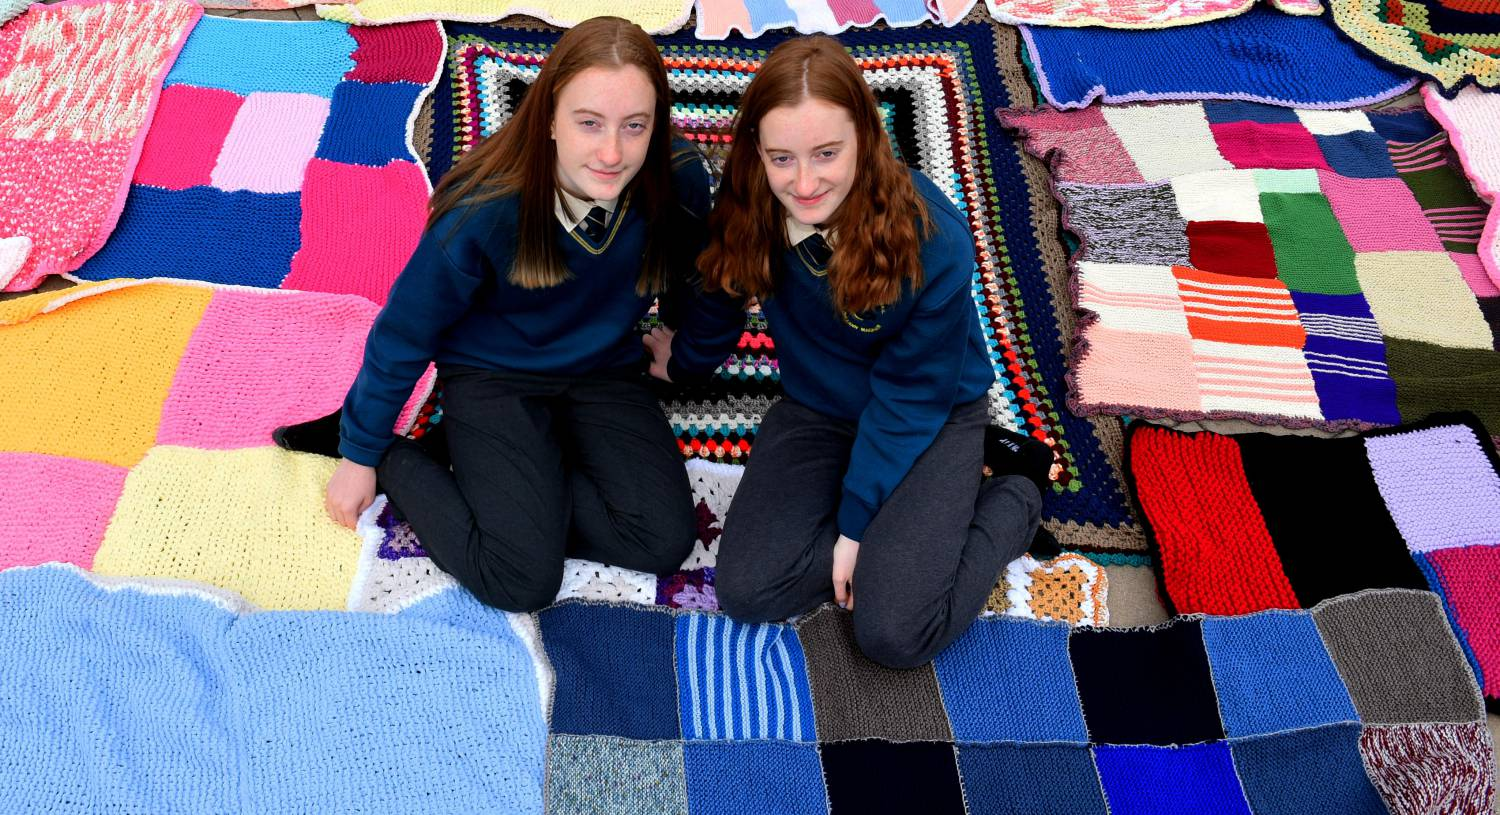 Students and elderly in Cork knit together to provide 'Blankets of Hope' to cancer patients